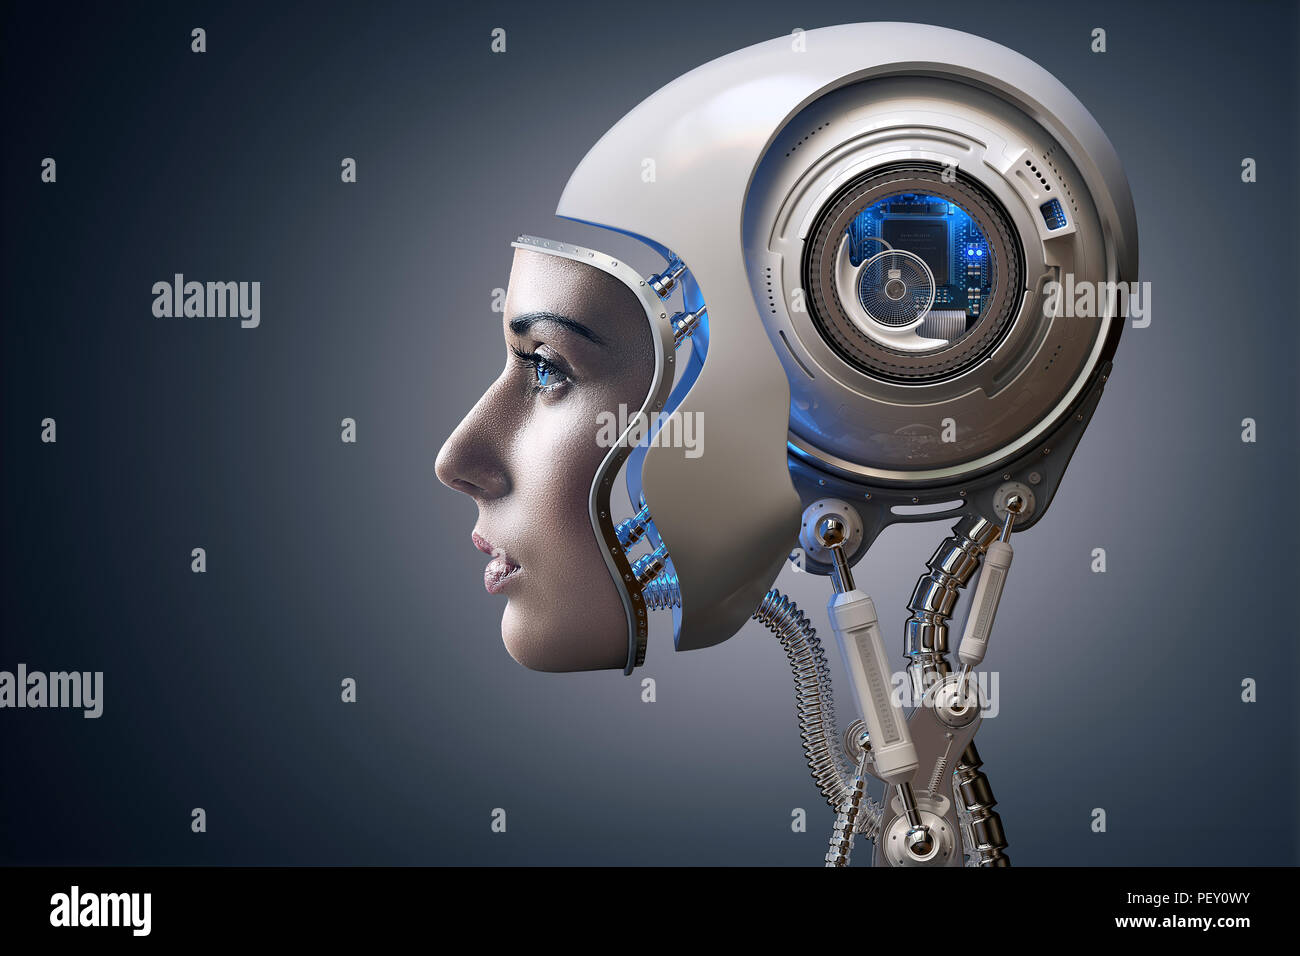 Cyborg illustrated with the face of a real young woman combined with a 3D rendered robot head. Conceptual of futuristic bionics and artificial intelli - Stock Image